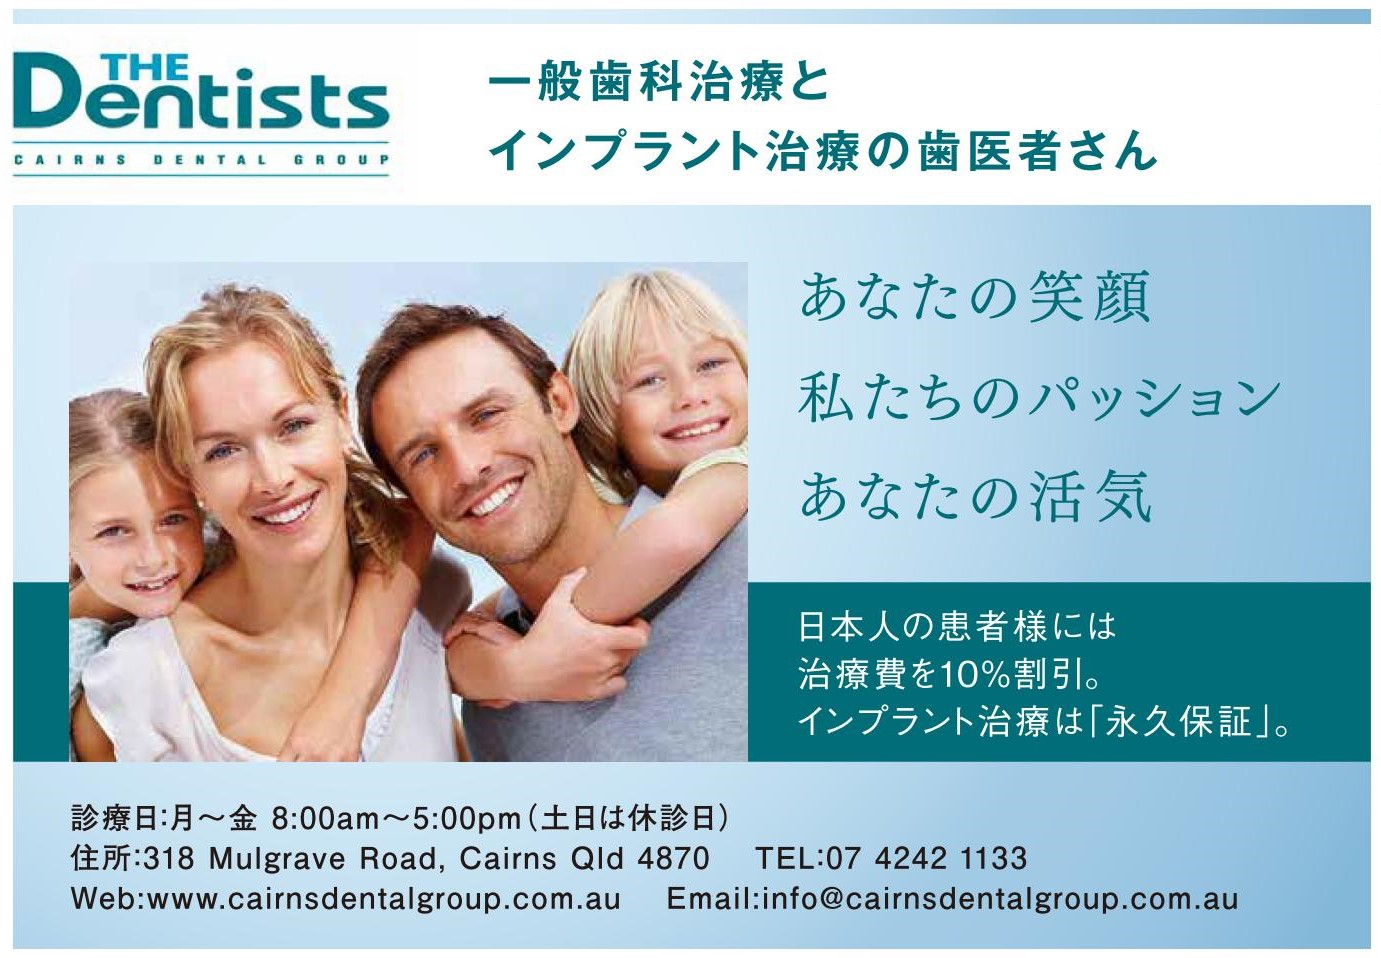 The Dentist Cairns Dental Group